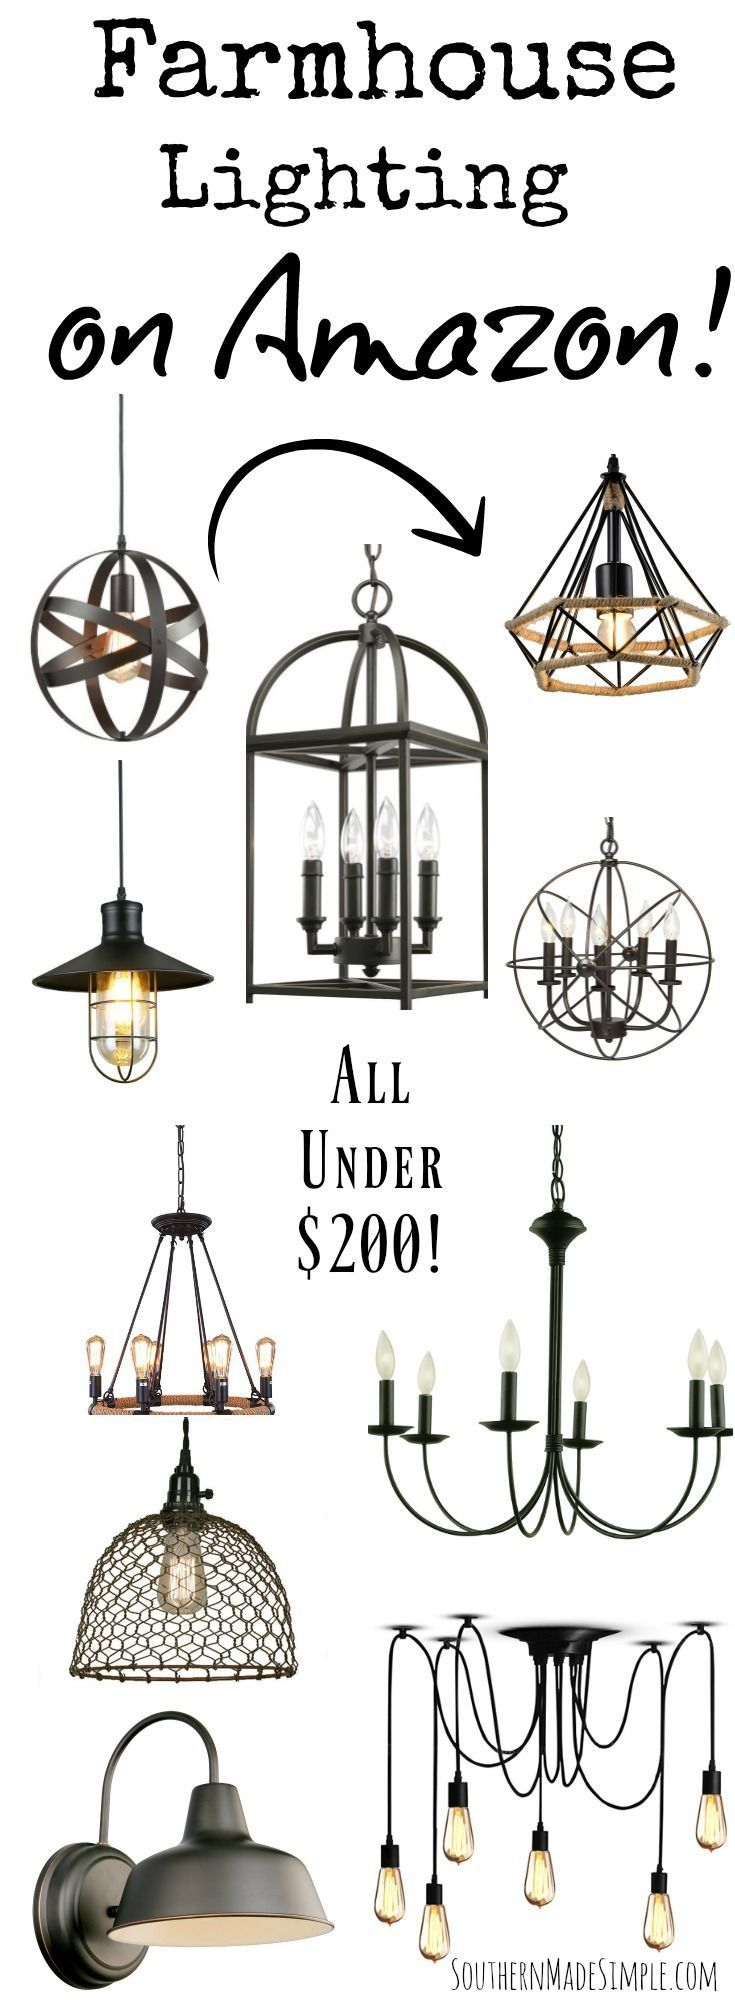 styles of lighting. farmhouse light fixtures under 200 on amazon styles of lighting